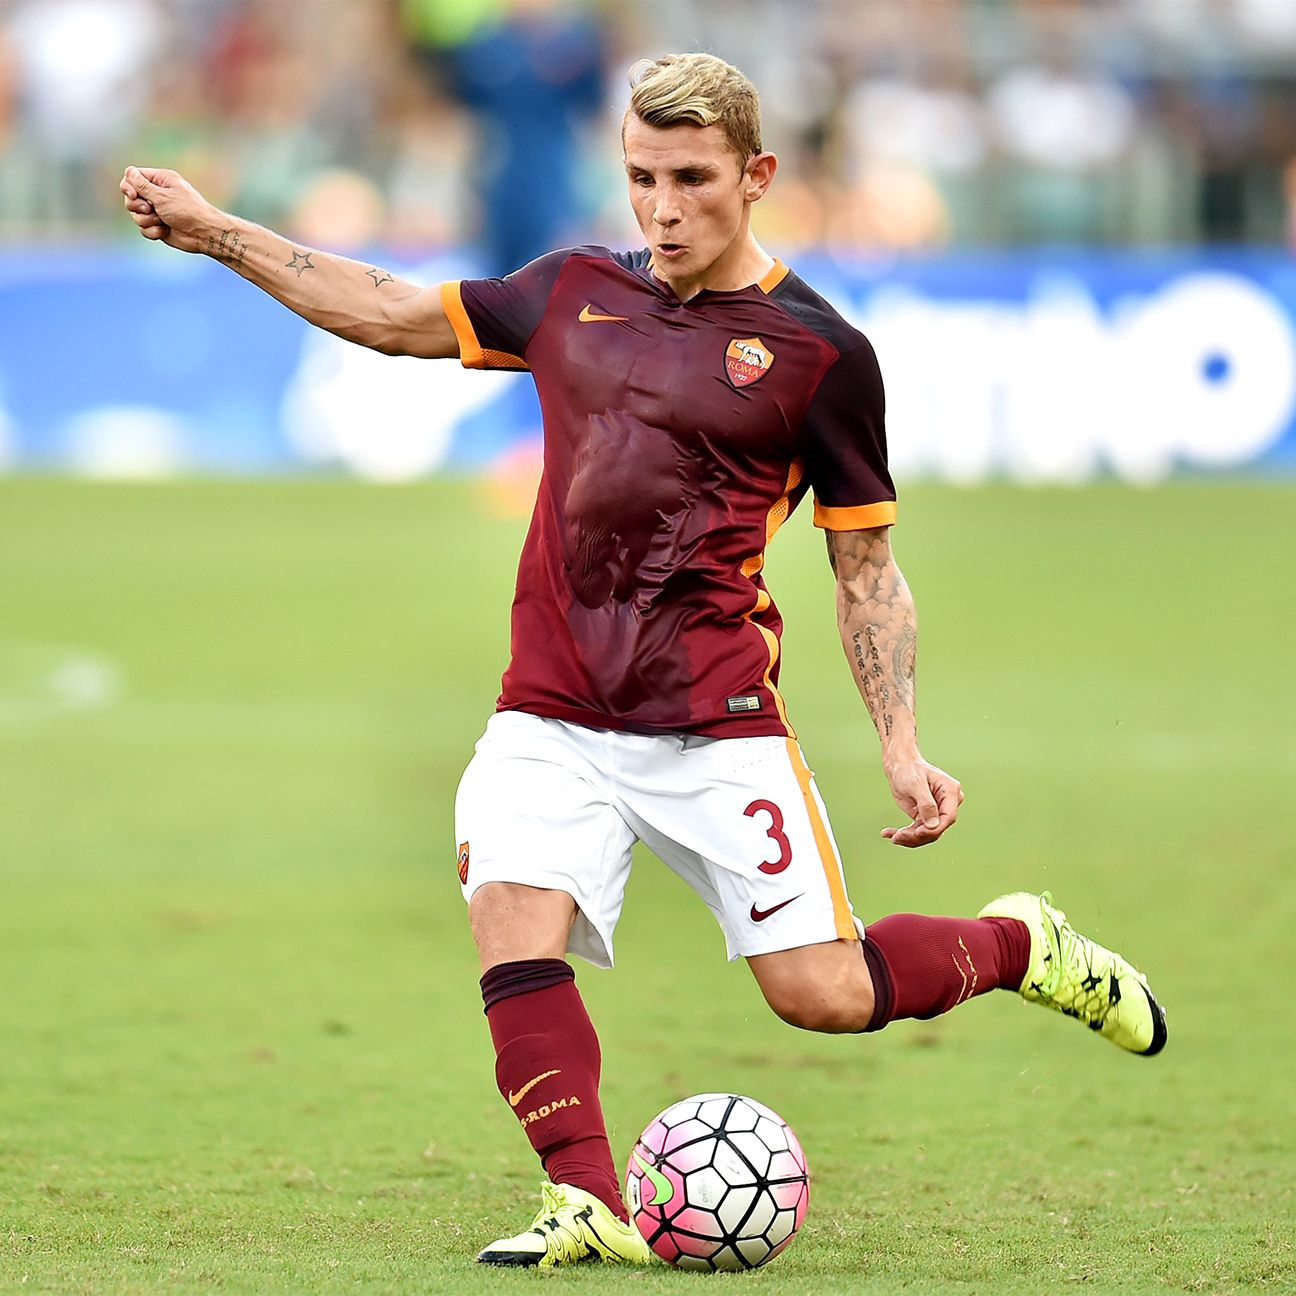 Lucas Digne has started all but one match this season for Roma.